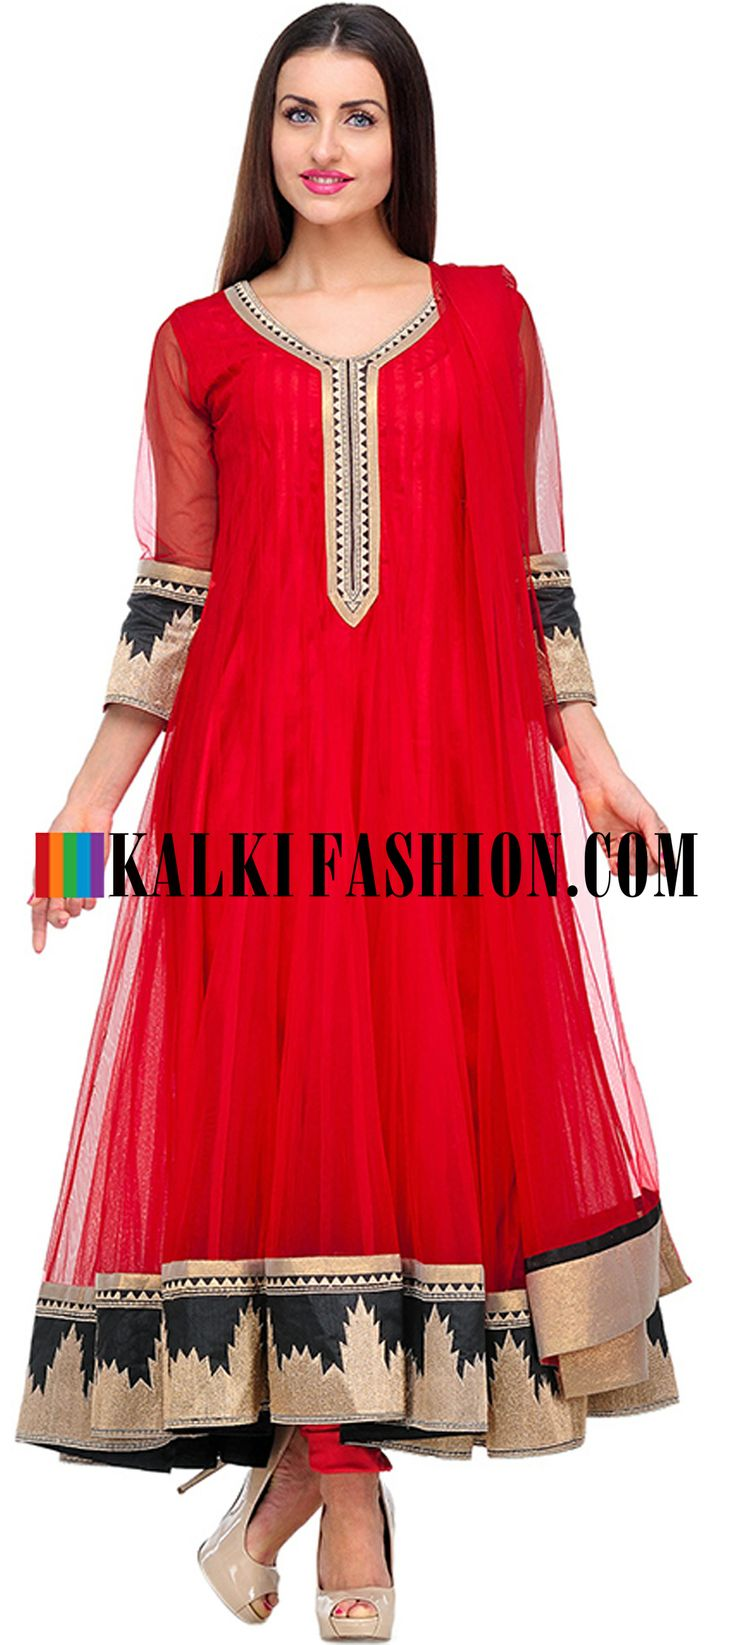 Buy Online from the link below. We ship worldwide (Free Shipping over US$100)  http://www.kalkifashion.com/red-embroidered-anarkali-suit-set-10593.html